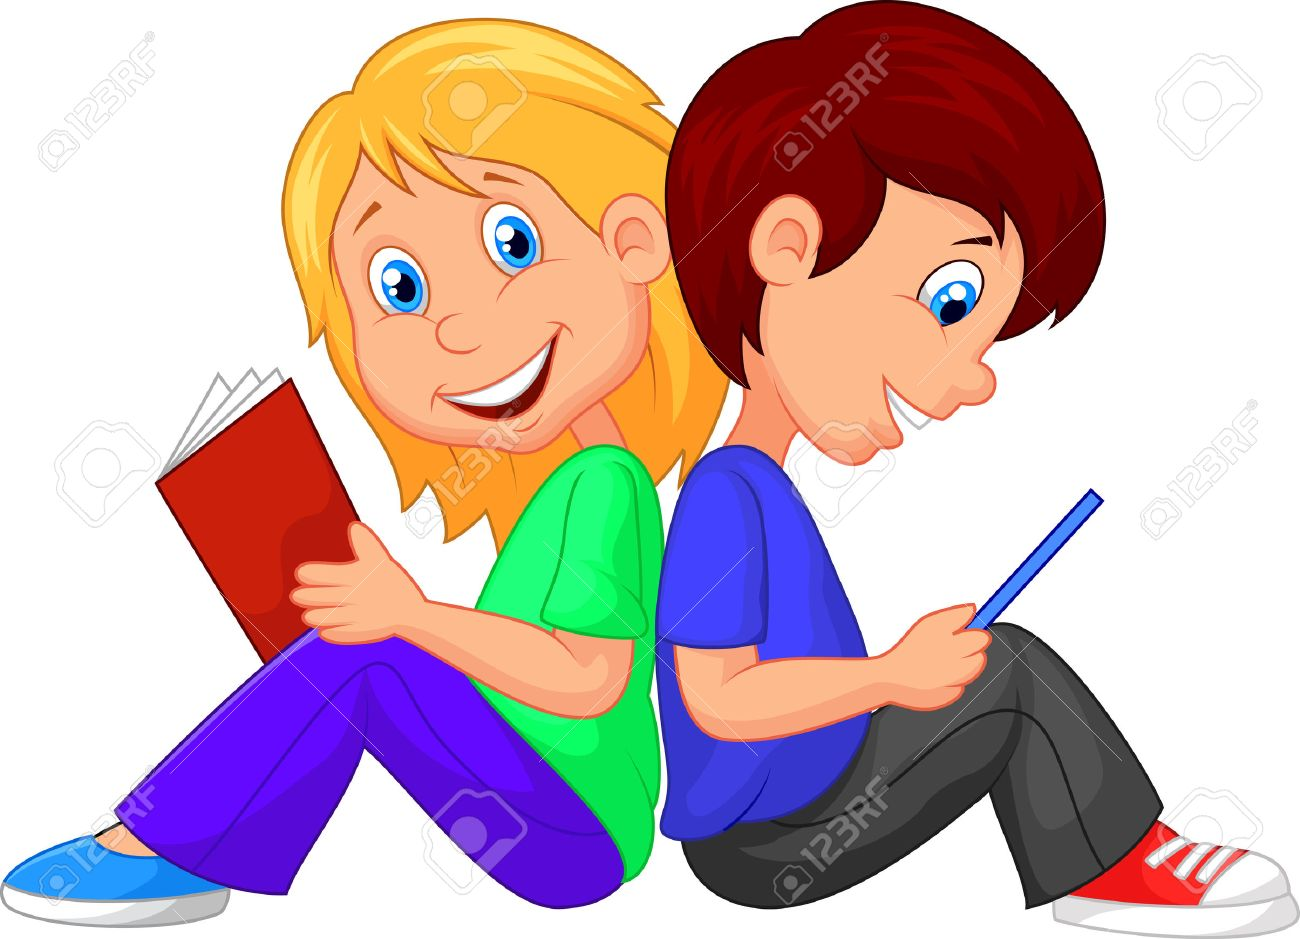 cartoon boy and girl reading book royalty free cliparts, vectors